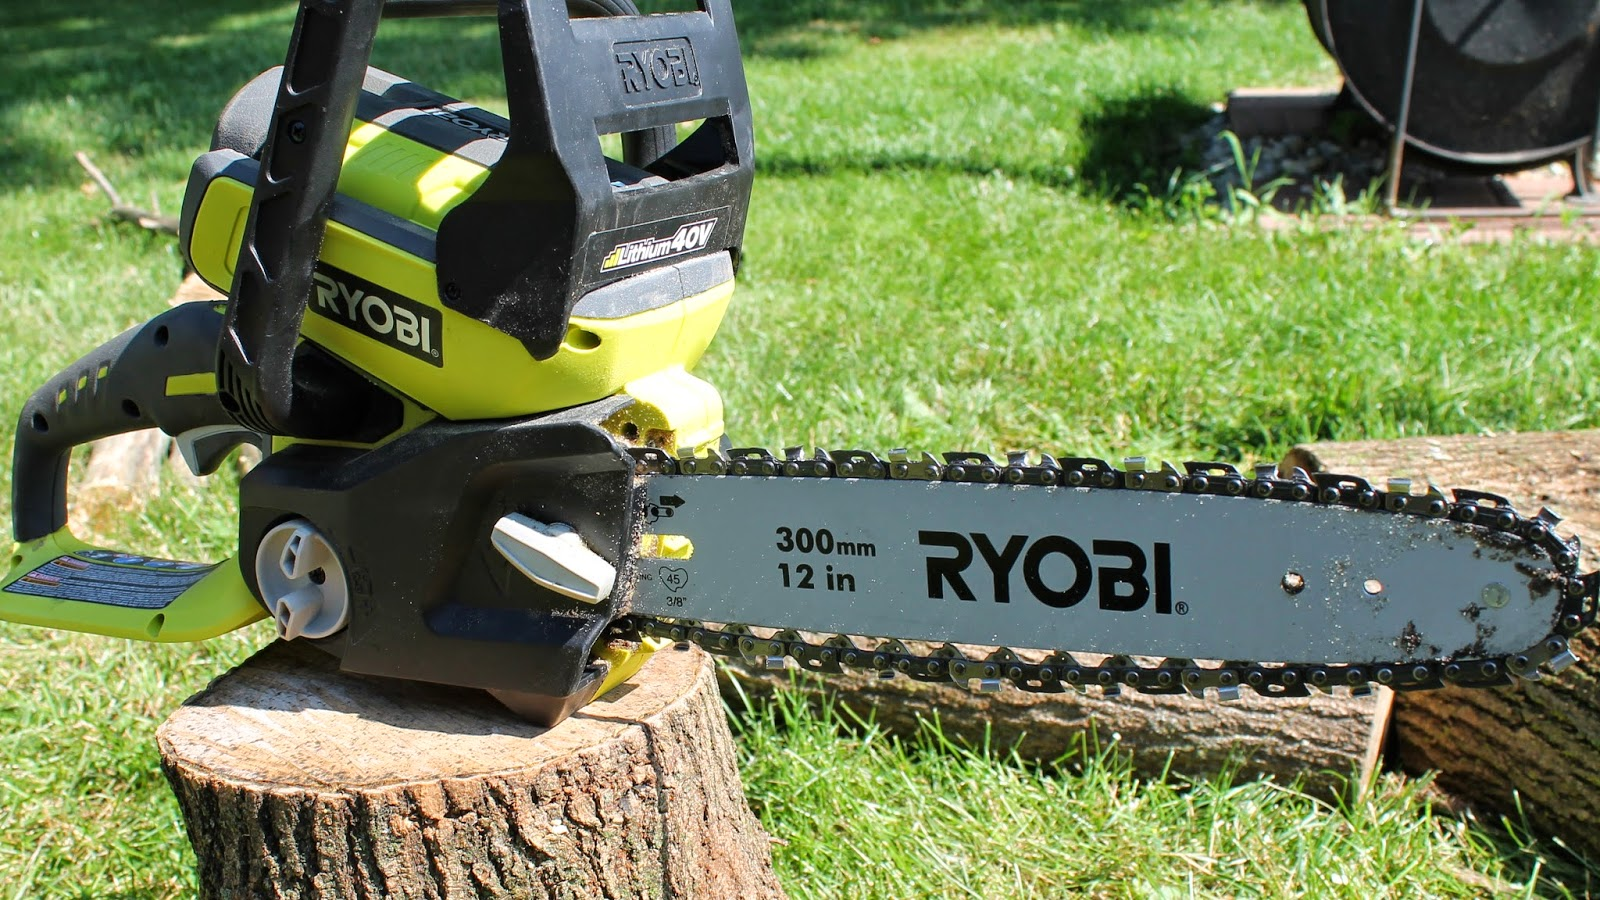 Ryobi 40 volt electric chainsaw review simple suburban living i know what youre thinking because i was thinking the same thing when i purchased this electric chain saw to keyboard keysfo Gallery